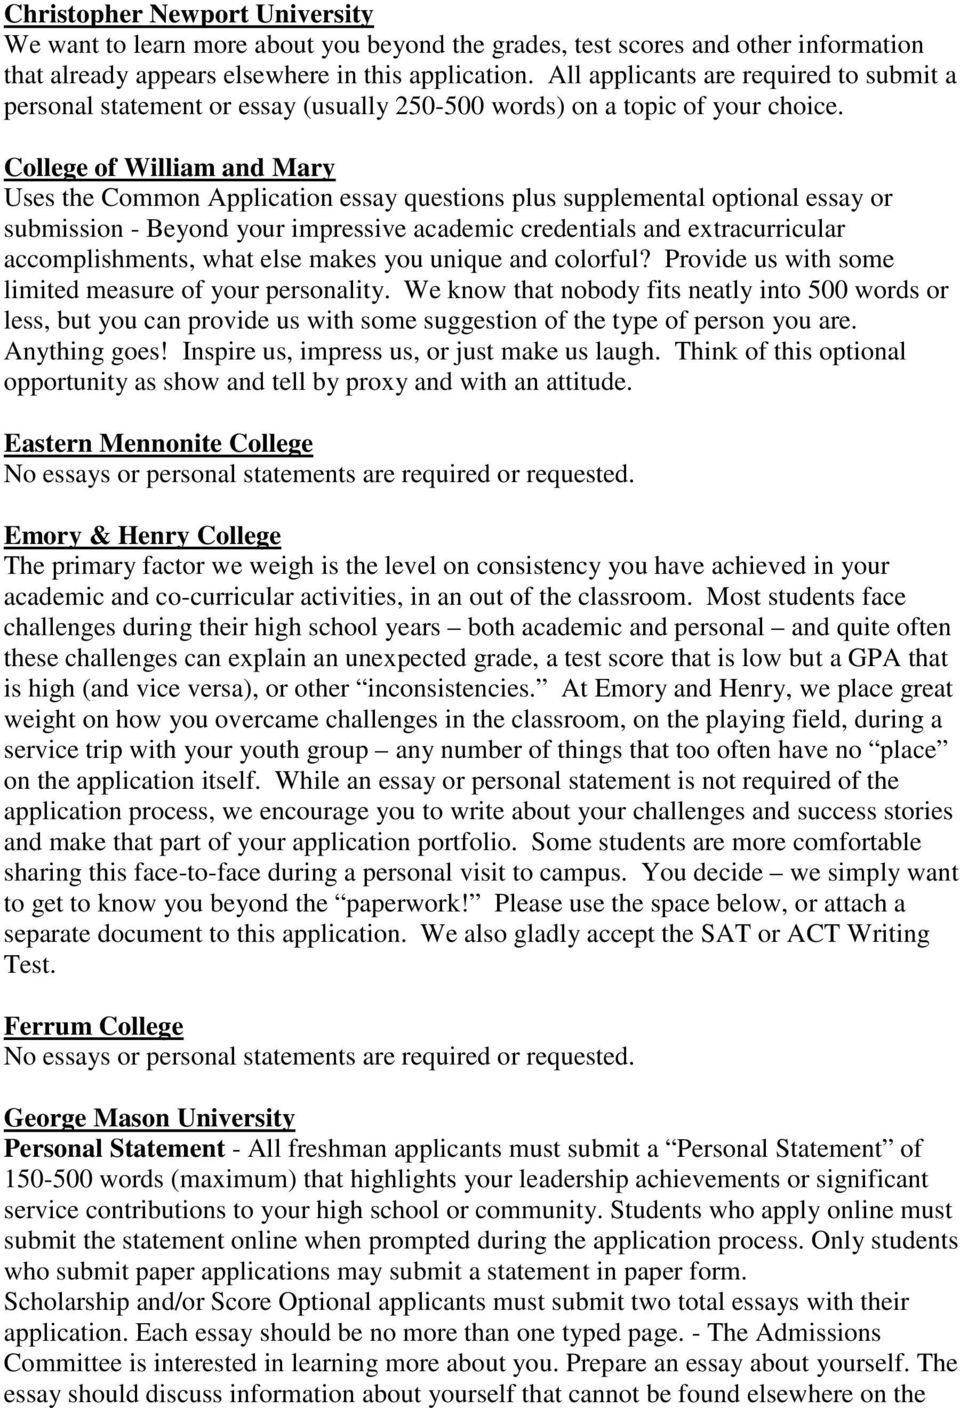 College of William and Mary Uses the Common Application essay questions plus supplemental optional essay or submission - Beyond your impressive academic credentials and extracurricular